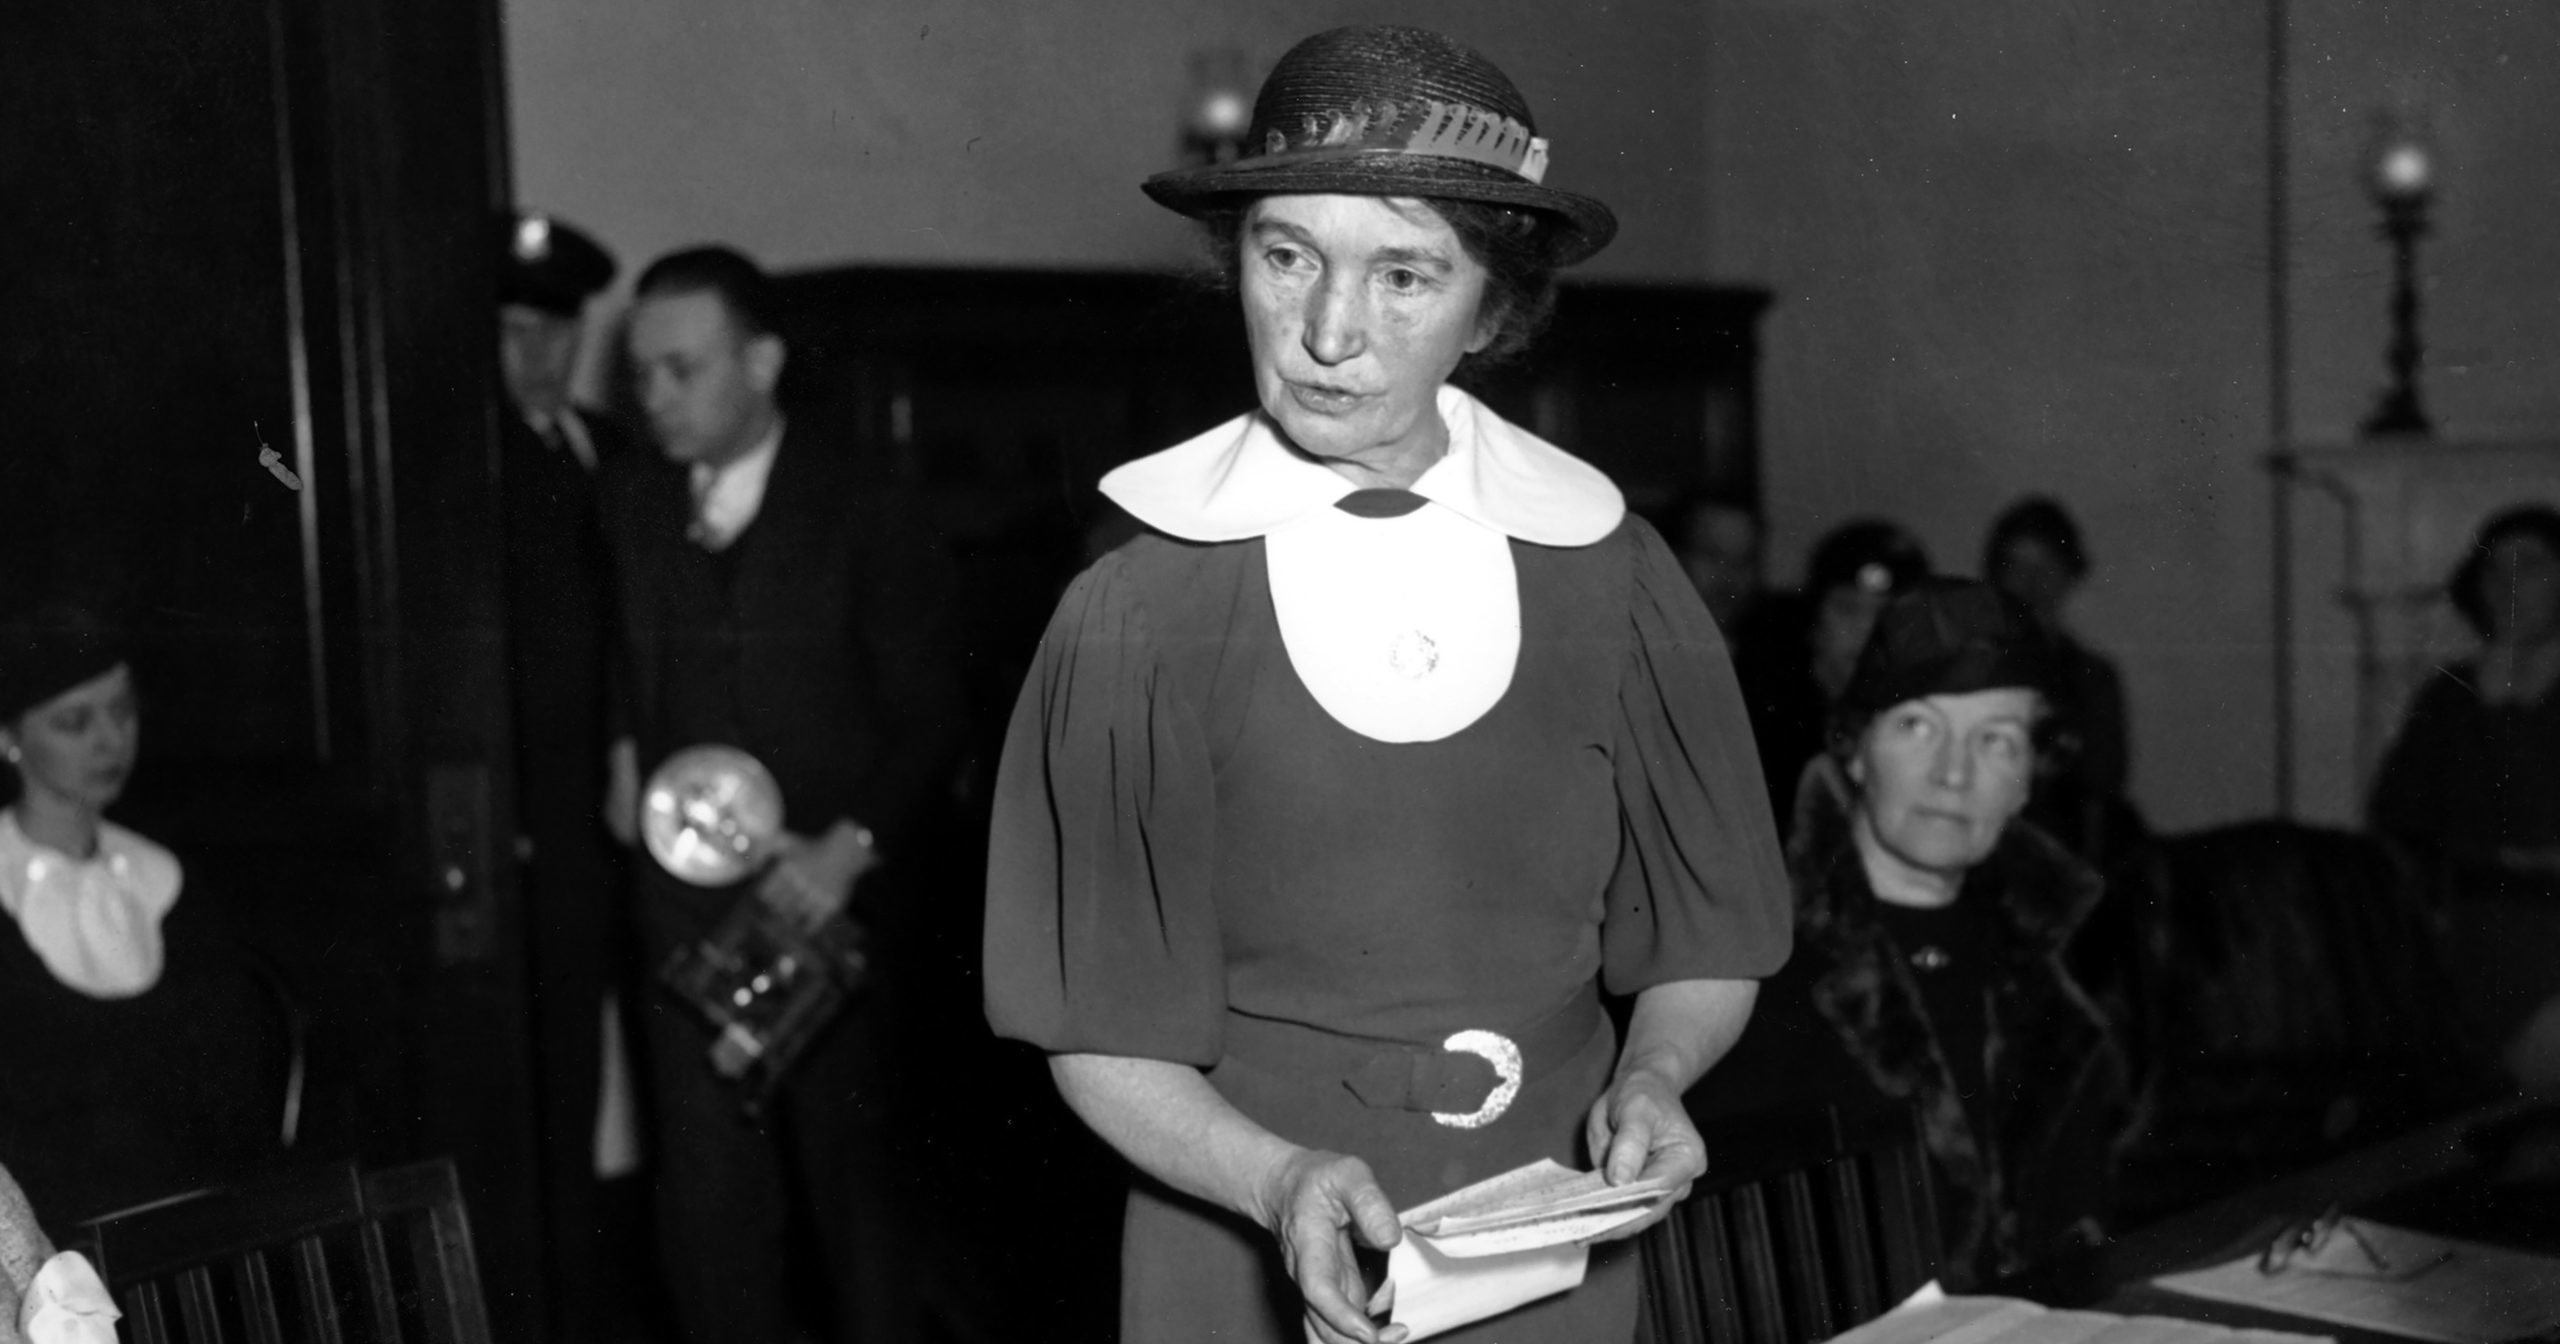 In this March 1, 1934, file photo, Margaret Sanger, who founded the American Birth Control League in 1921, speaks before a Senate committee to advocate for federal birth control legislation in Washington, D.C. Planned Parenthood of Greater New York is removing Sanger's name from a Manhattan clinic because of her ties to the eugenics movement, the organization announced July 21, 2020.